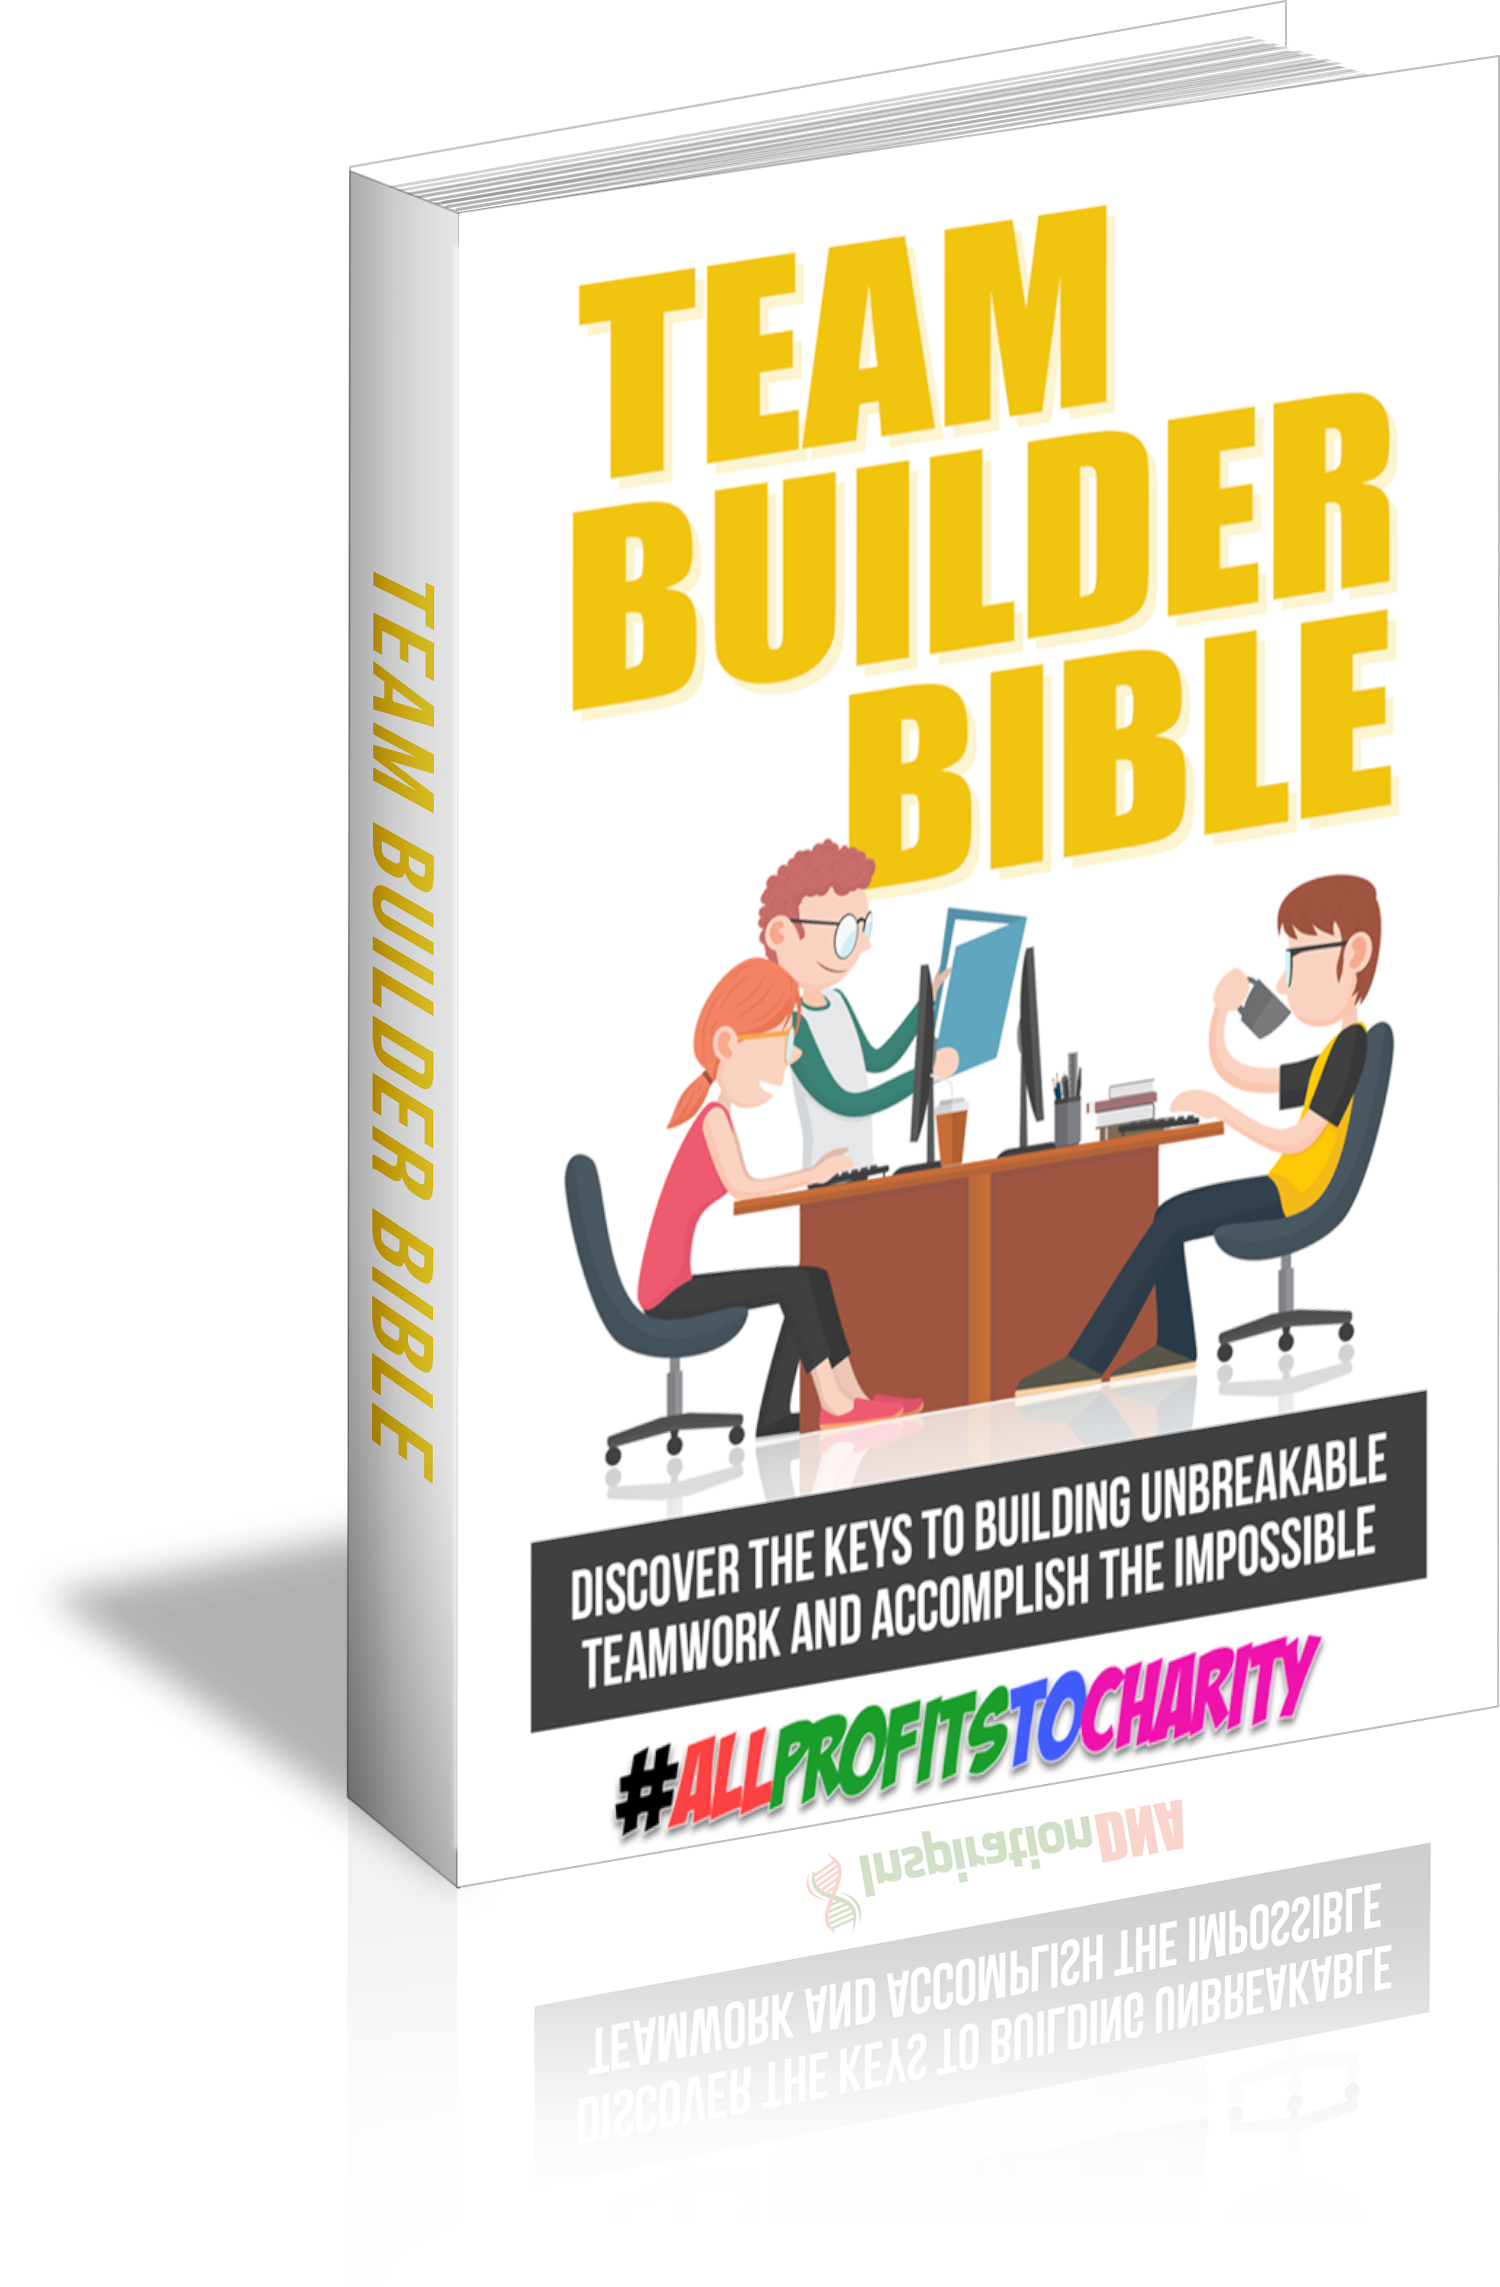 team builder bible cover